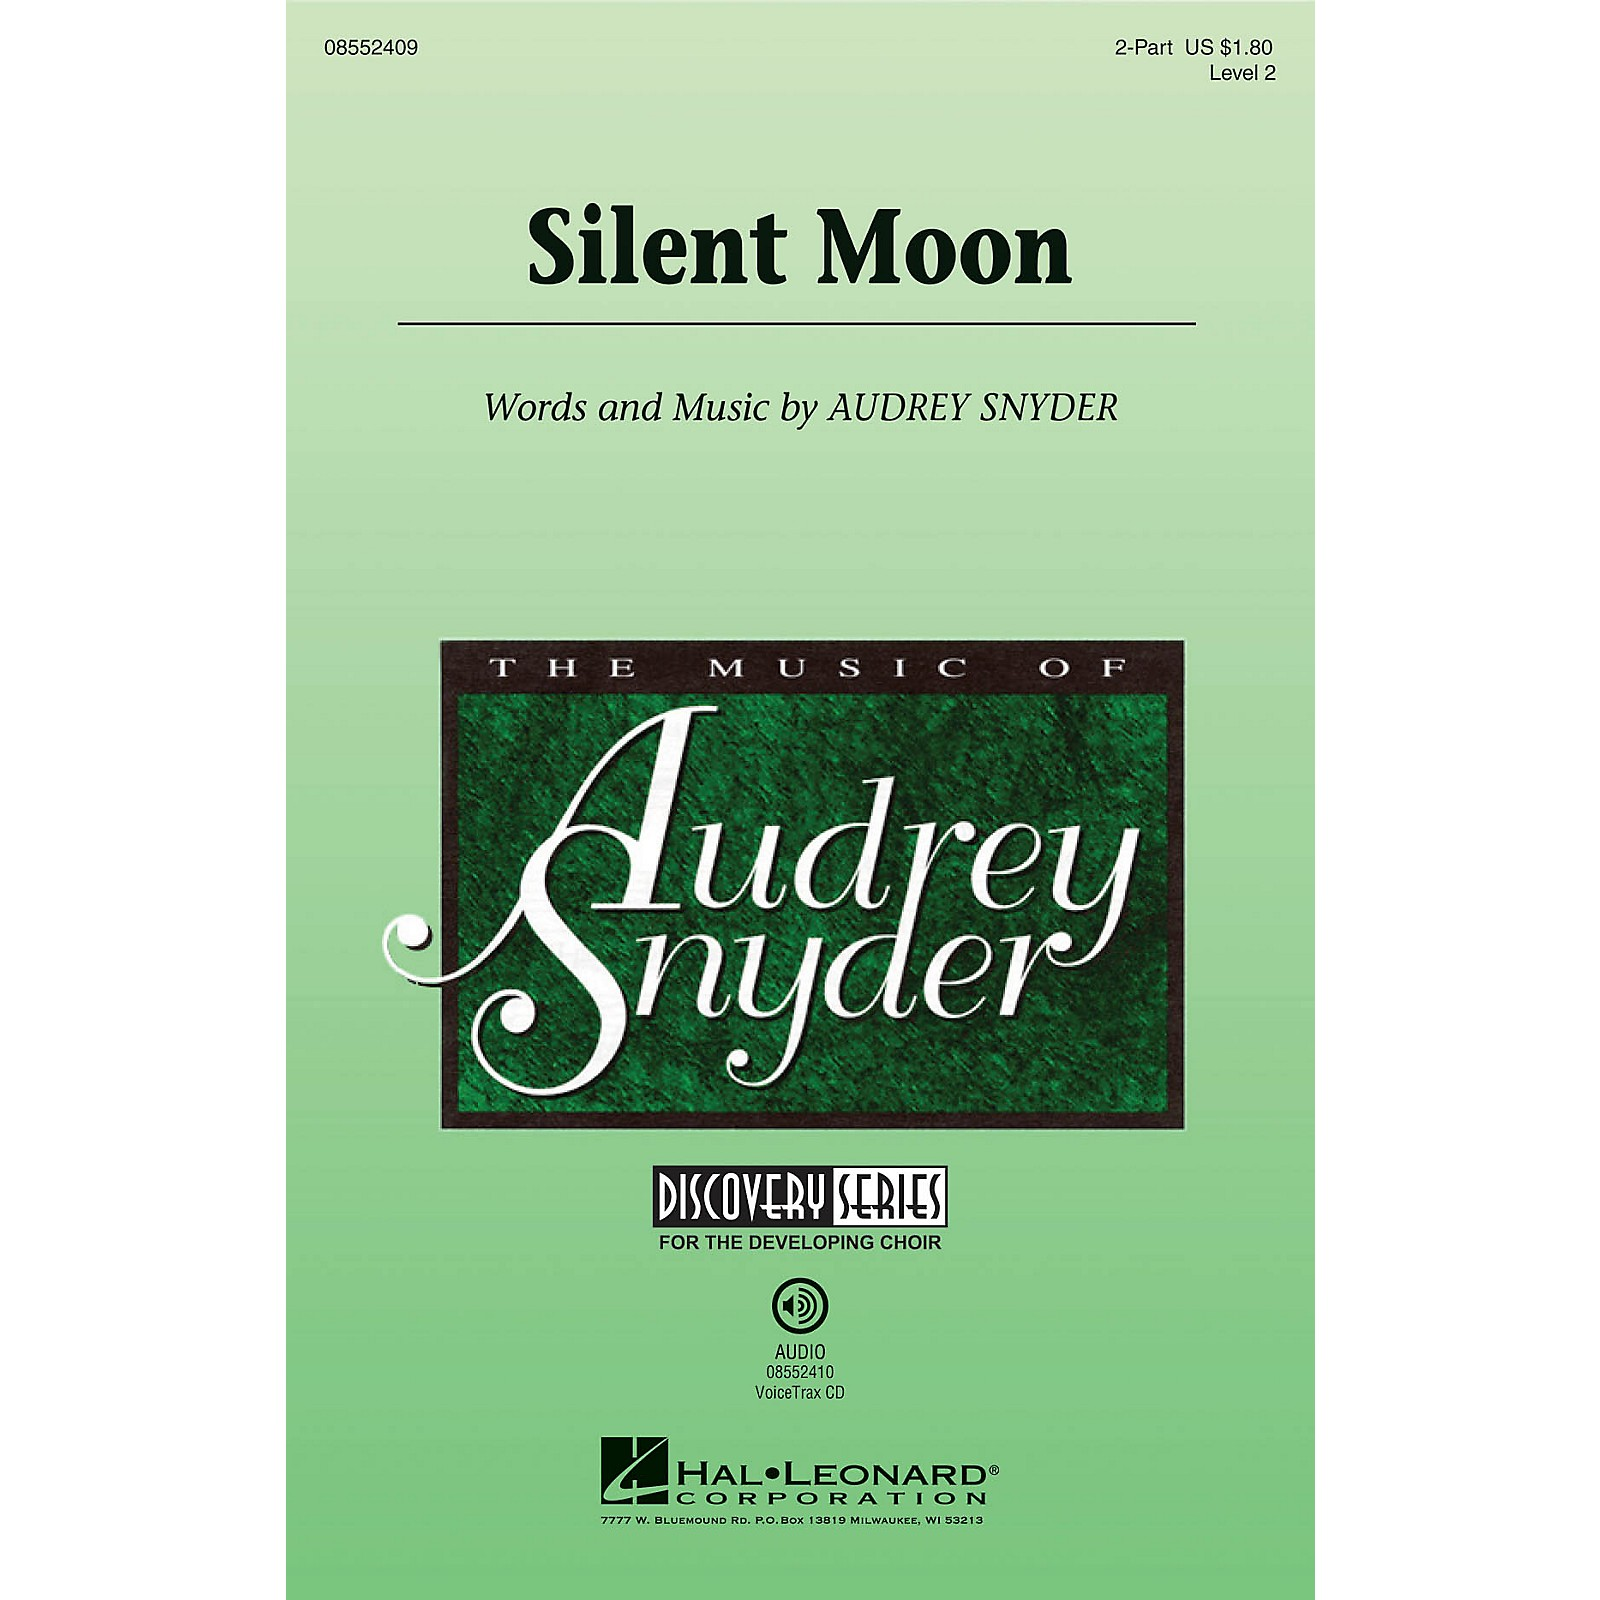 Hal Leonard Silent Moon (Discovery Level 2) 2-Part composed by Audrey Snyder